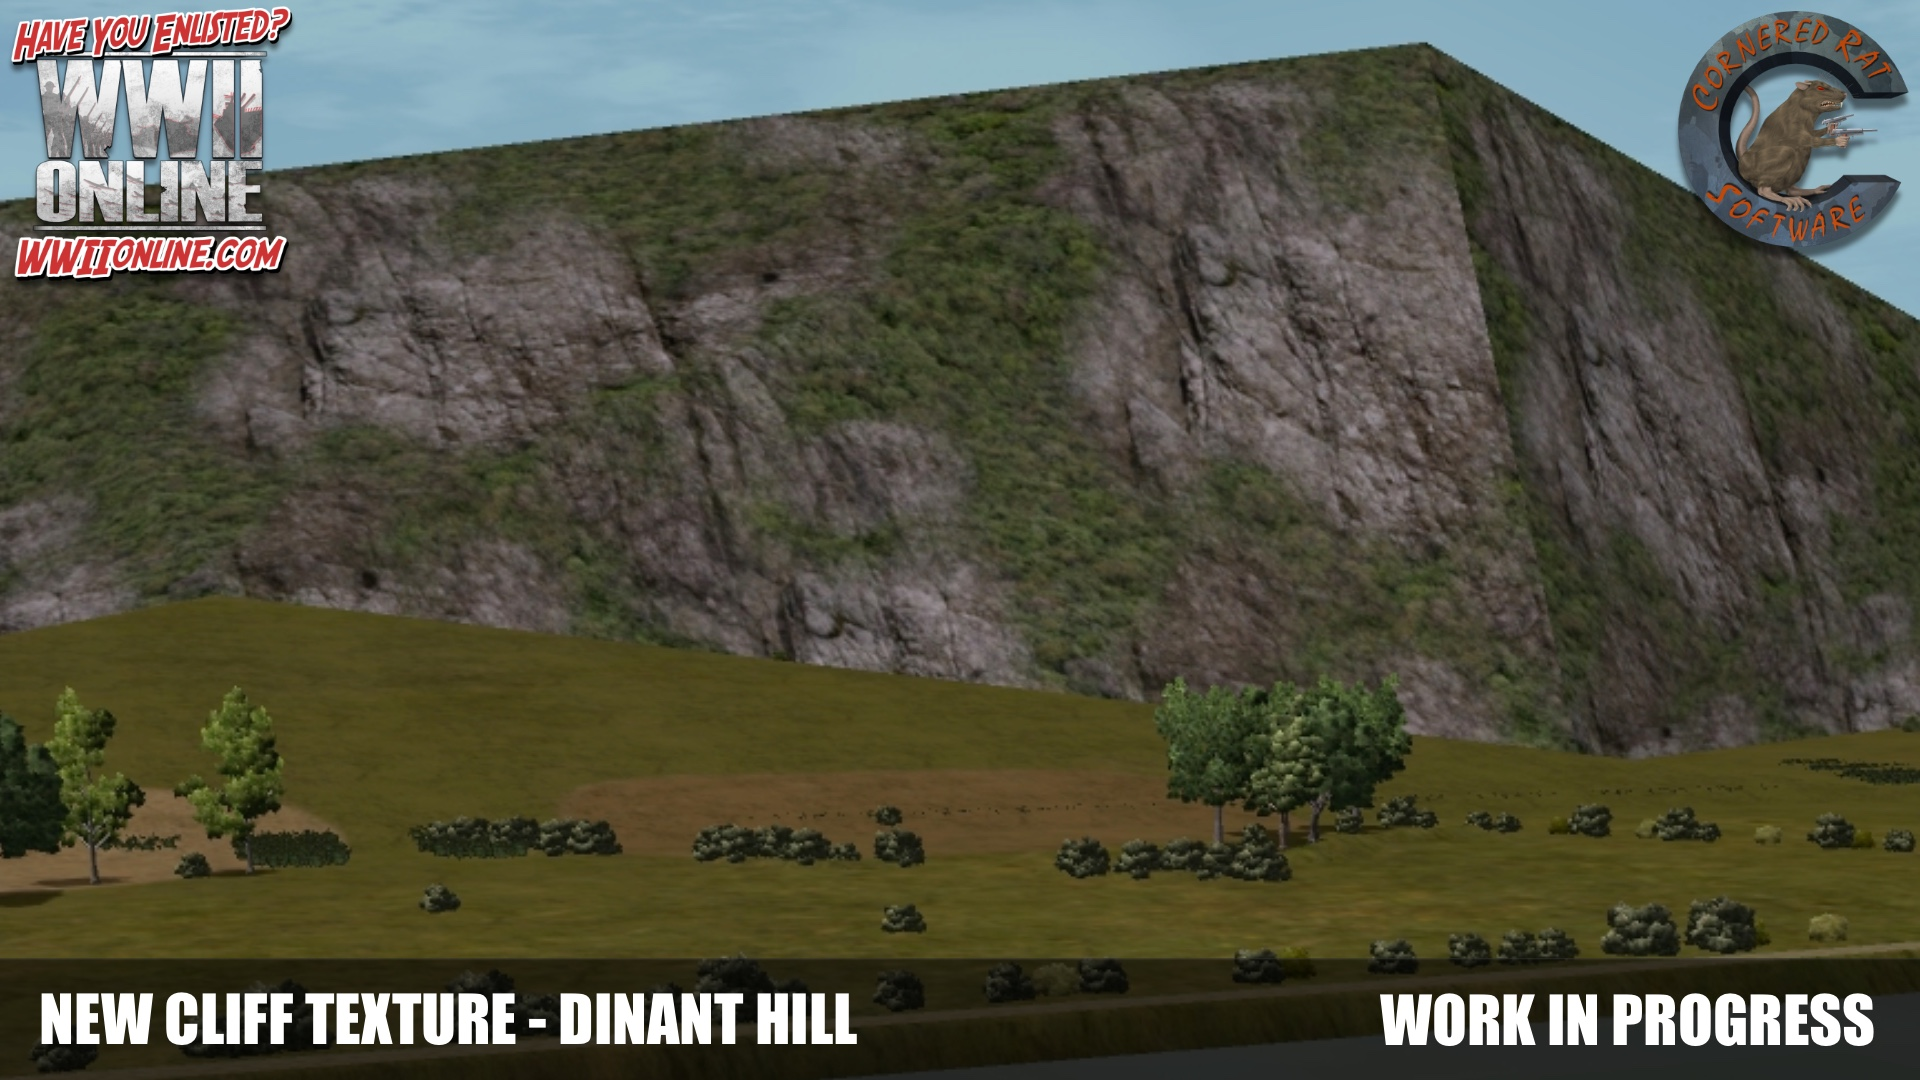 Dinant Hill receives a new look